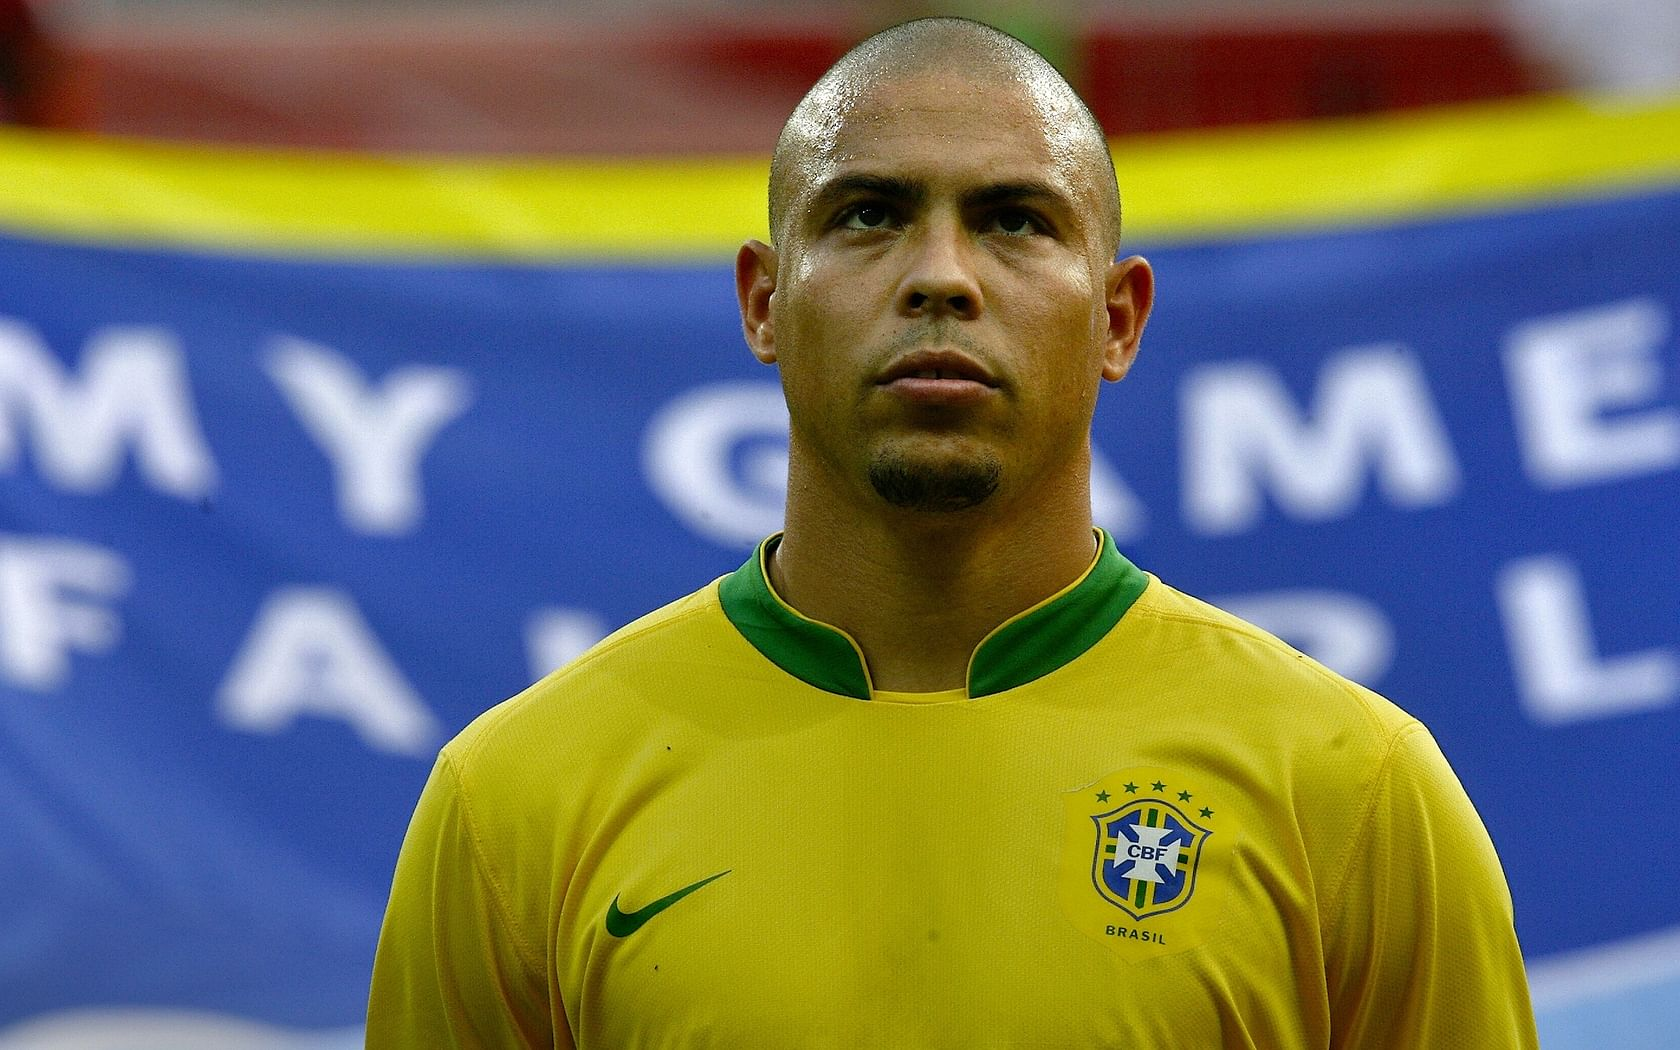 how old is ronaldo brazil